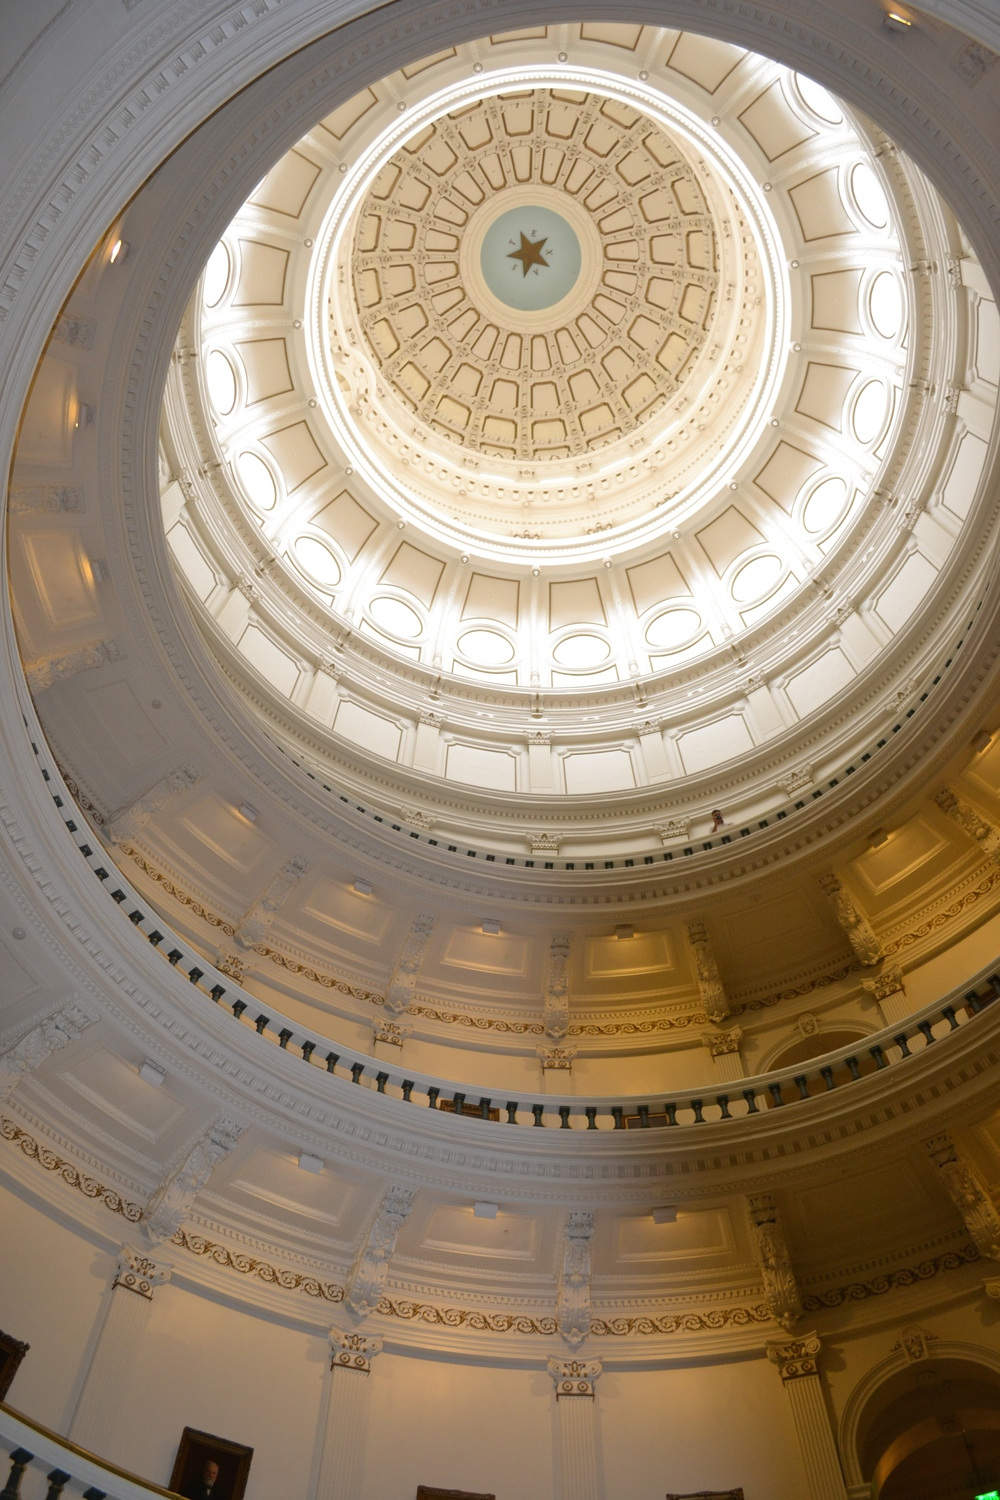 inside of the dome of the capitol building in austin